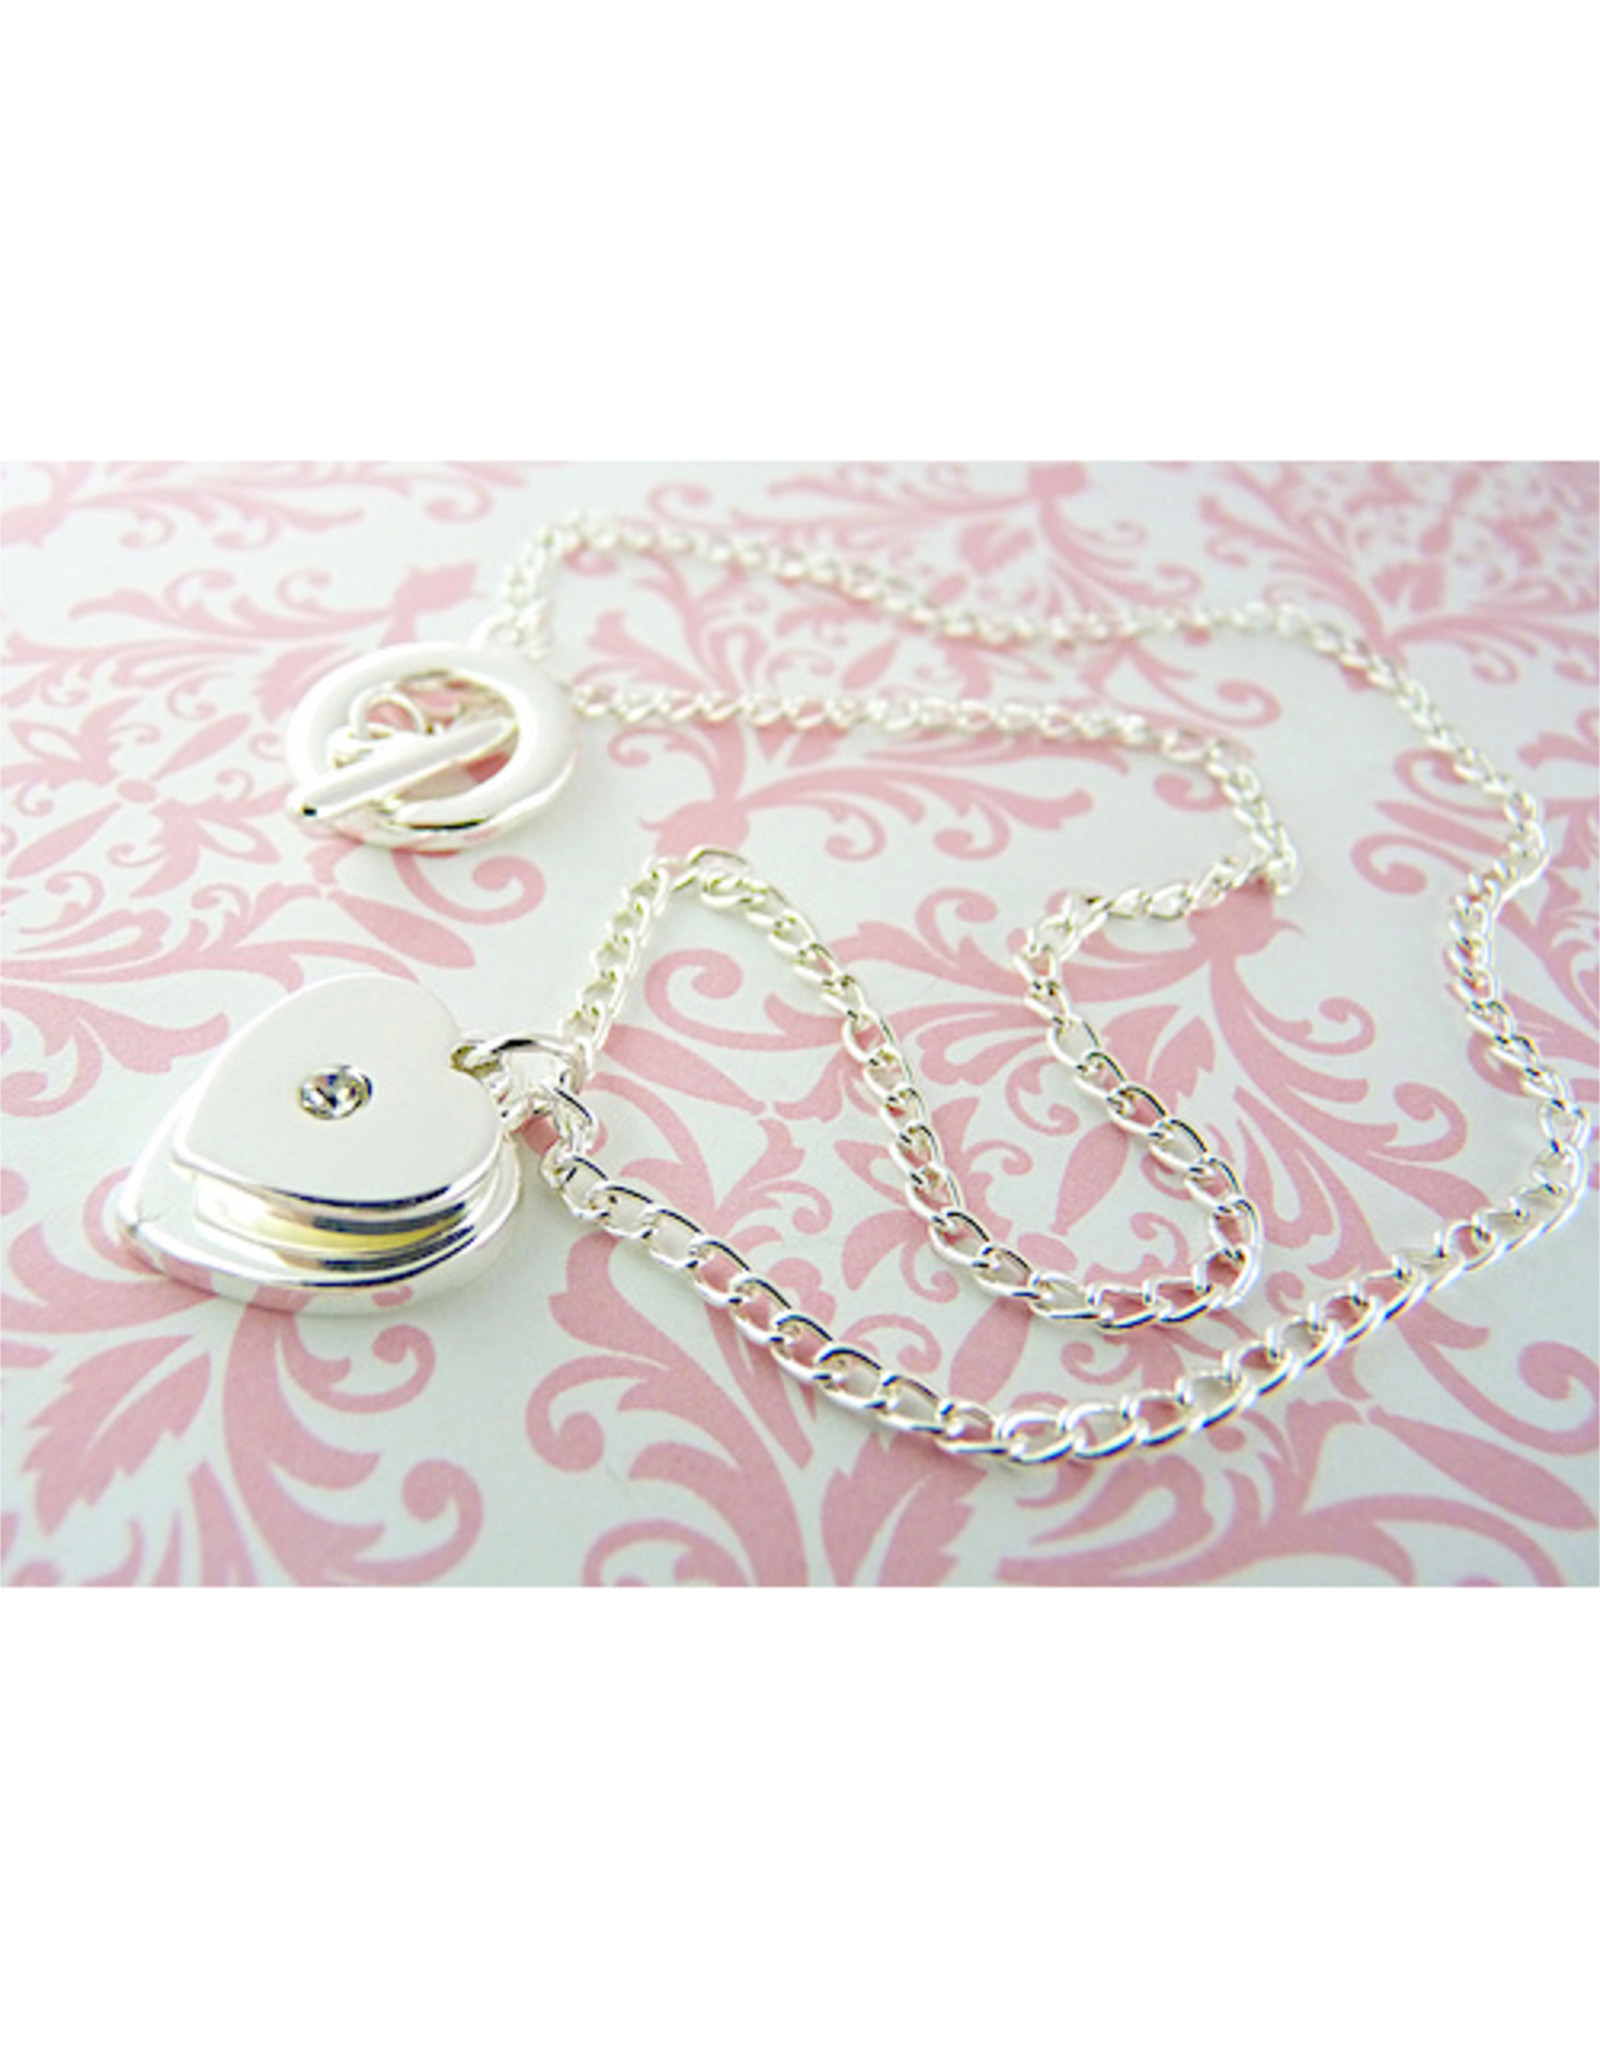 Snazzy & Co Girl's Necklace